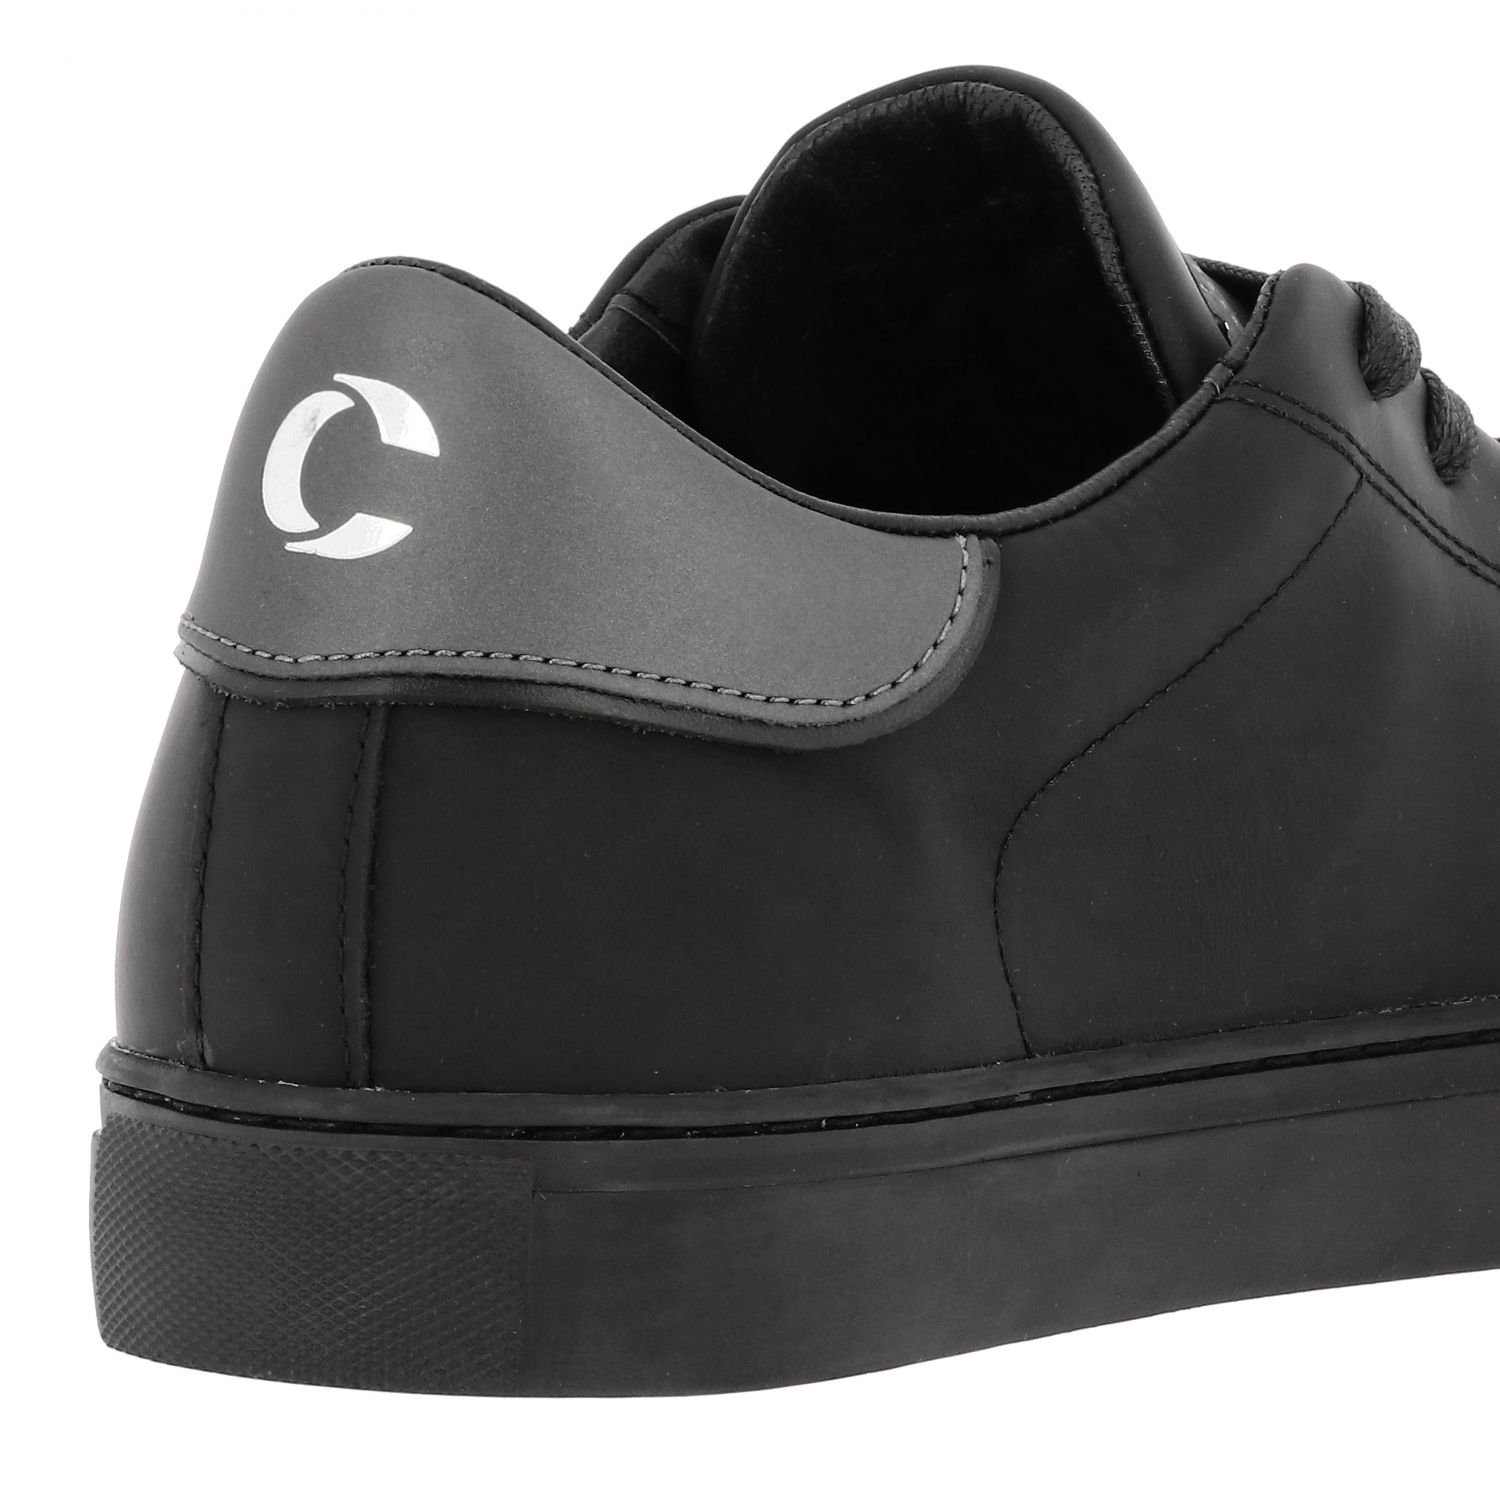 Sneakers Crime London: Shoes men Crime London black 5